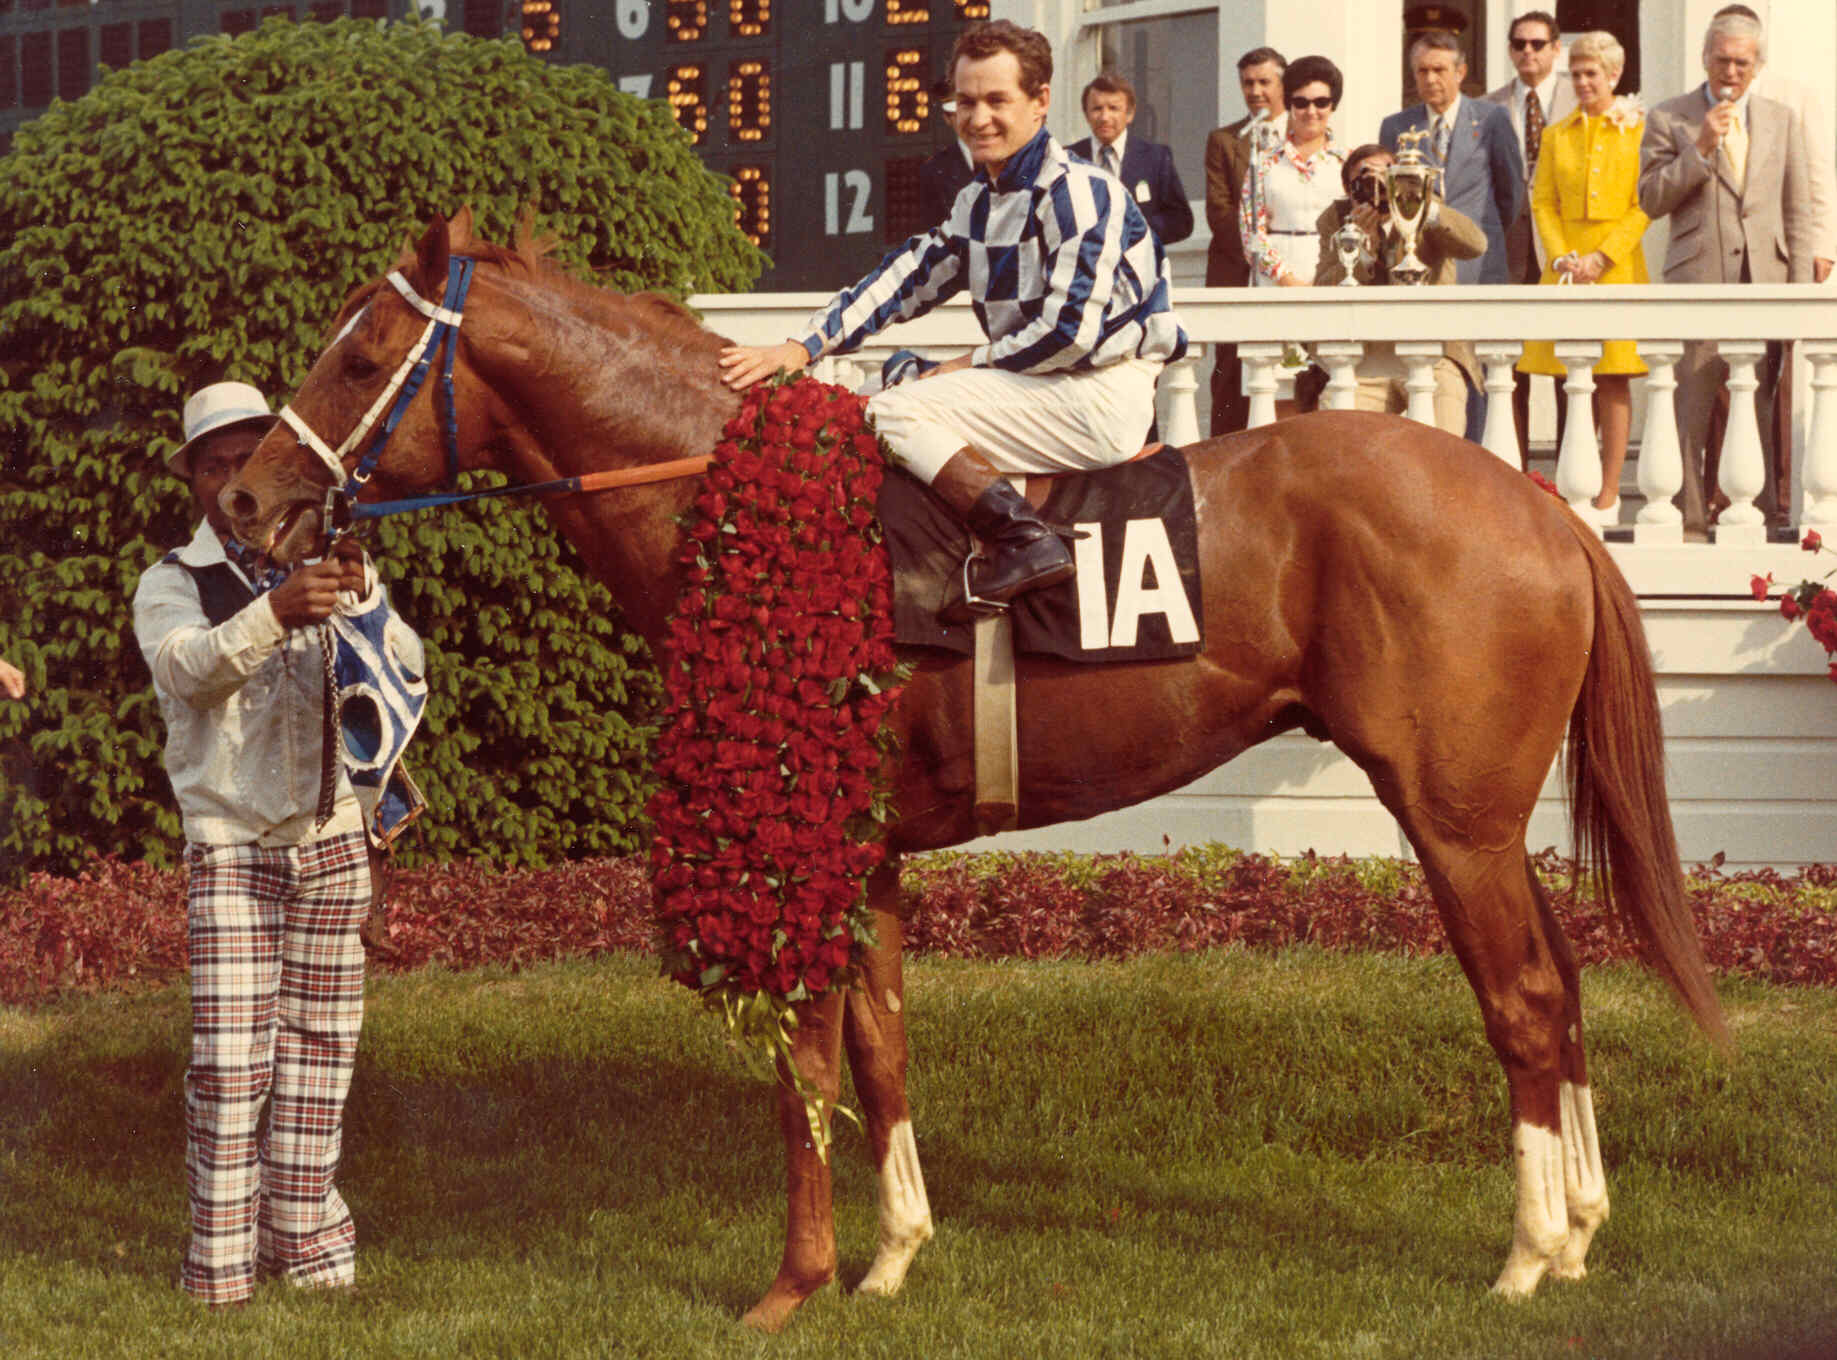 Secretariat's annual birthday celebration will be at The Meadow Event Park.